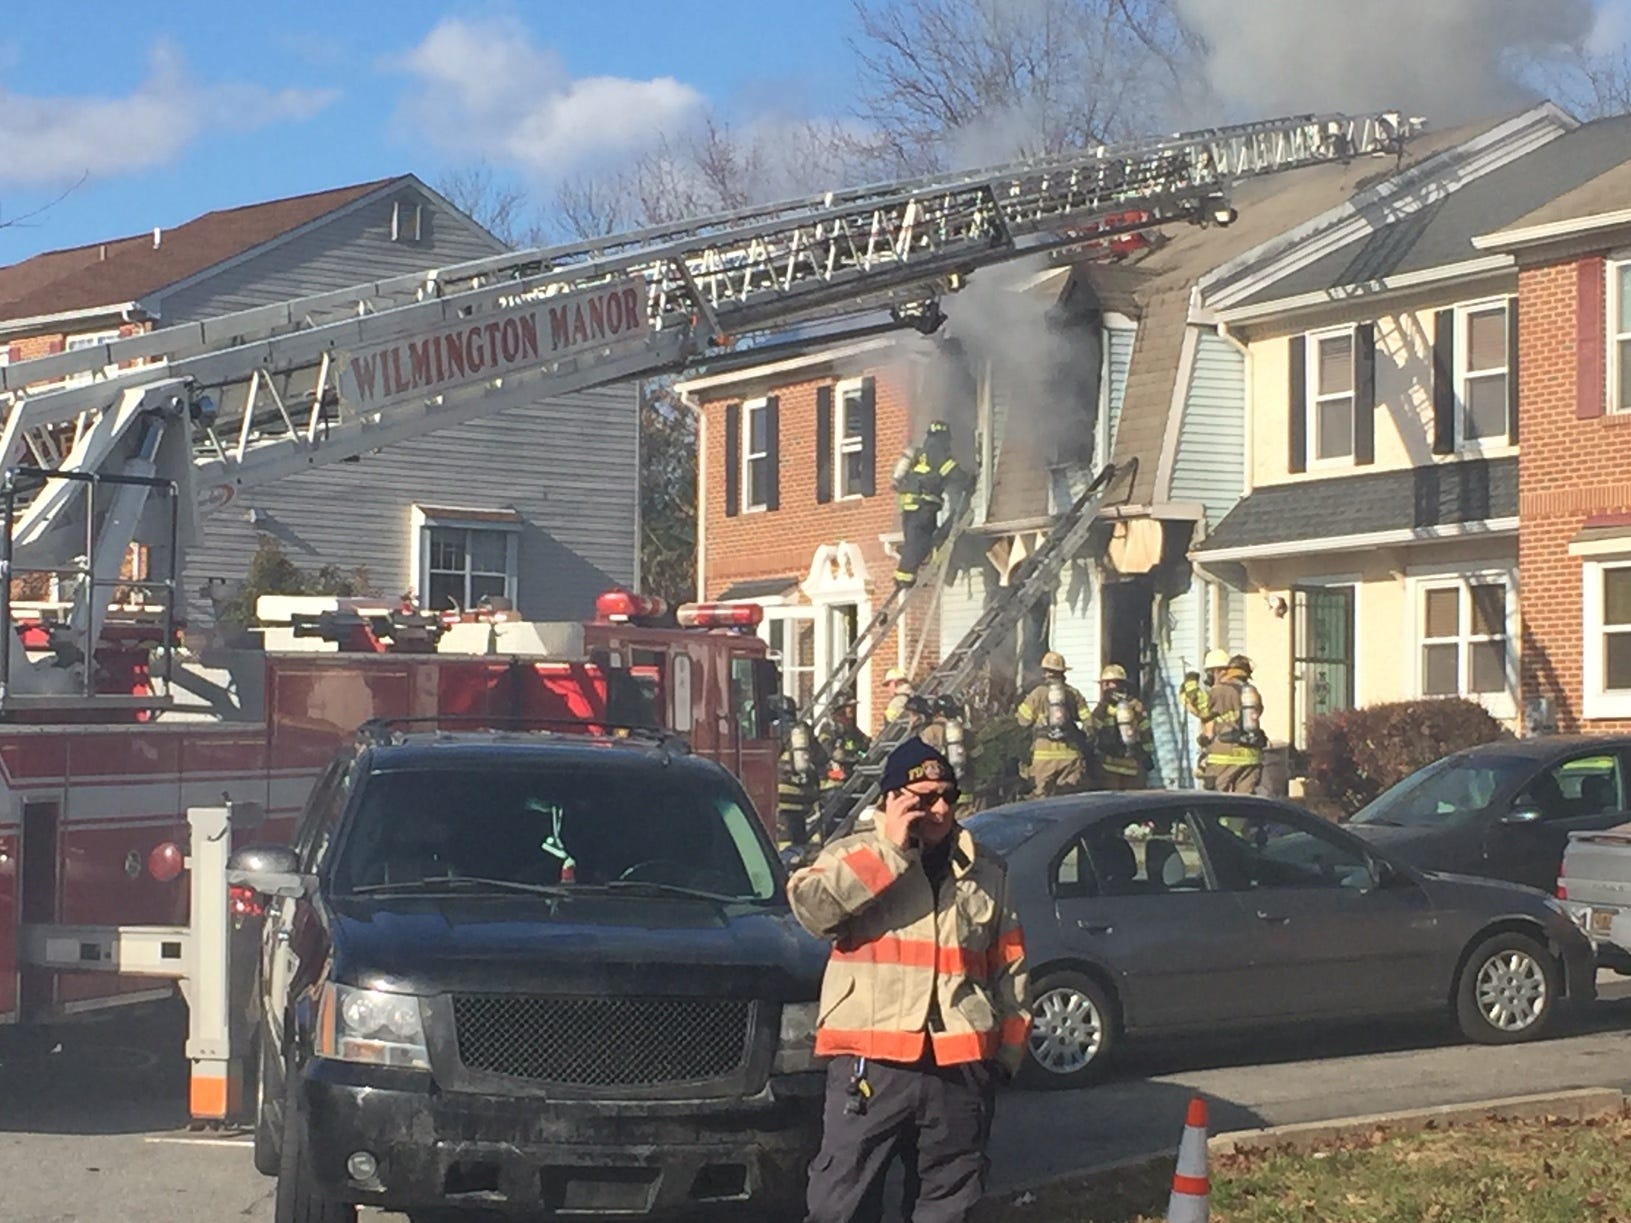 A townhouse fire claimed the life of one near New Castle on Friday morning.